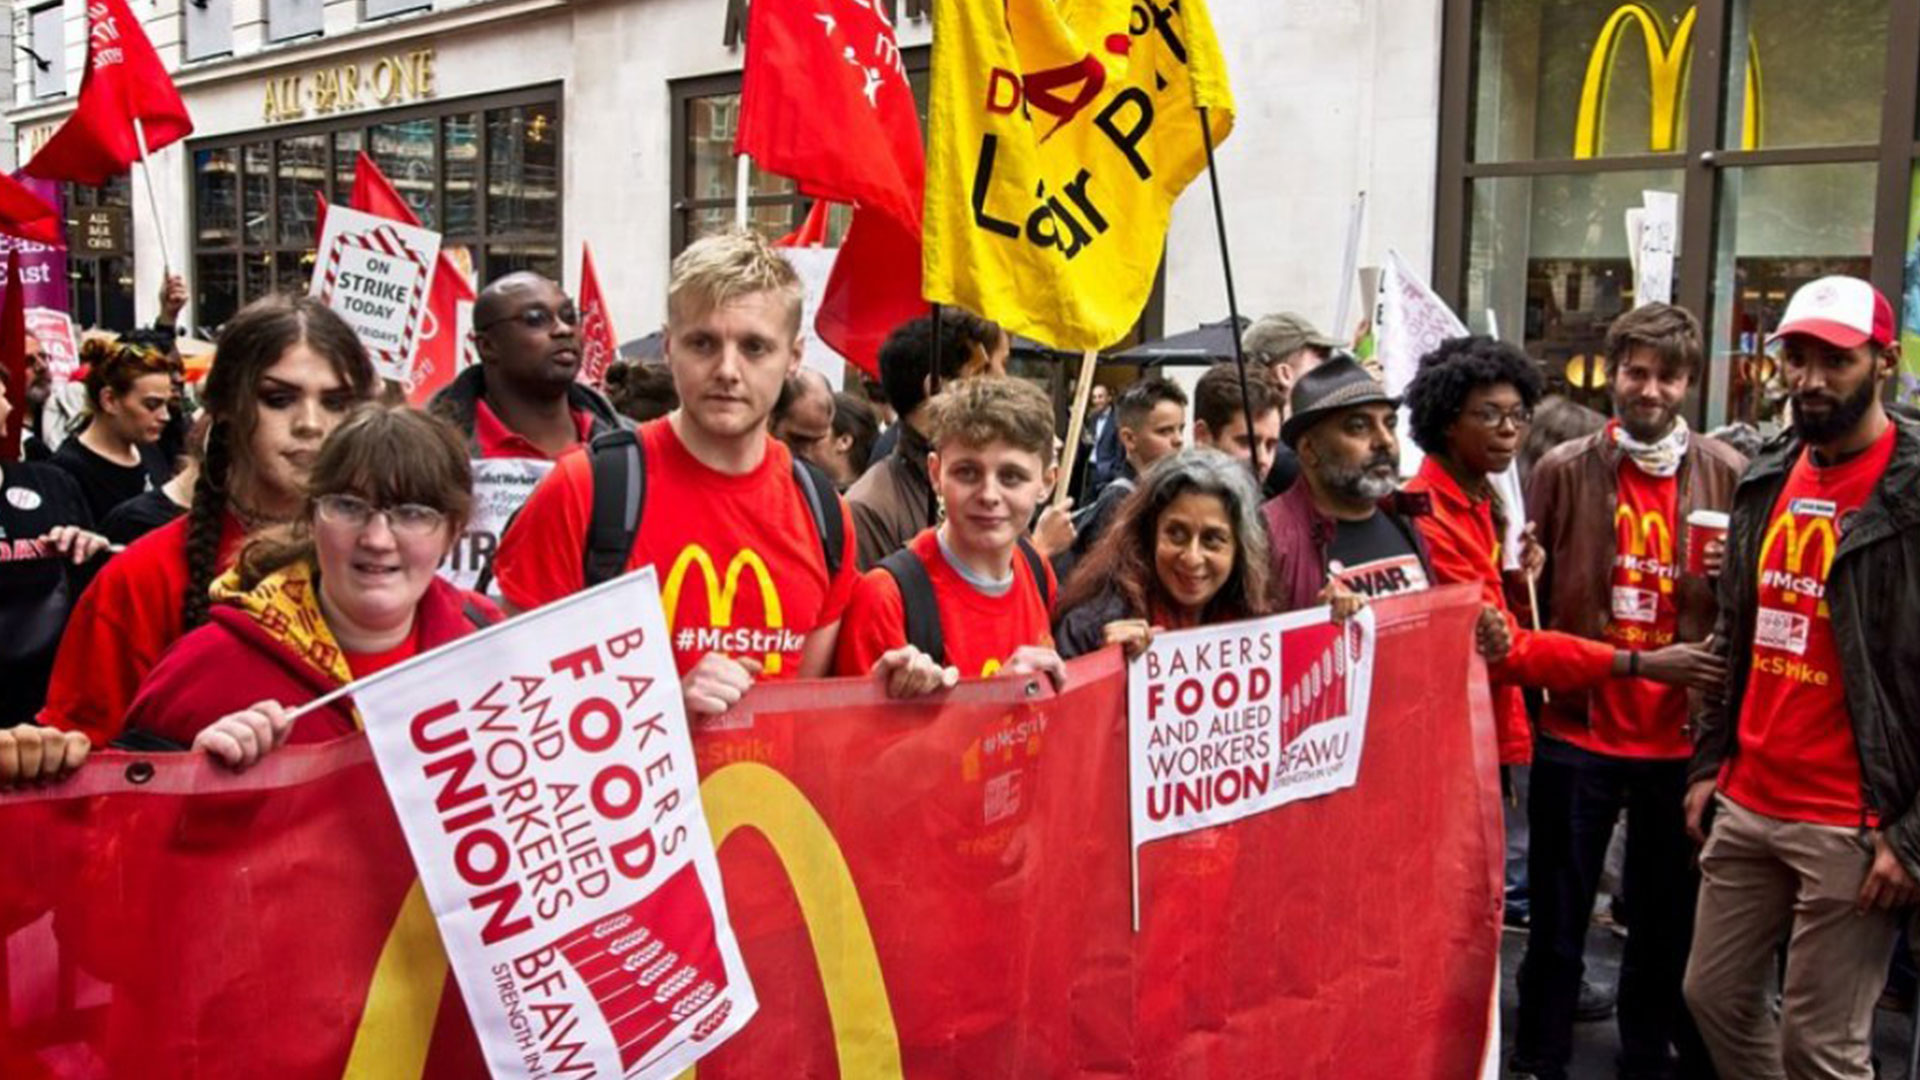 Workers, organized by the BFAWU, have demanded a hike in wages to GBP 15 per hour and union recognition, among other things (Photo: Morning Star)